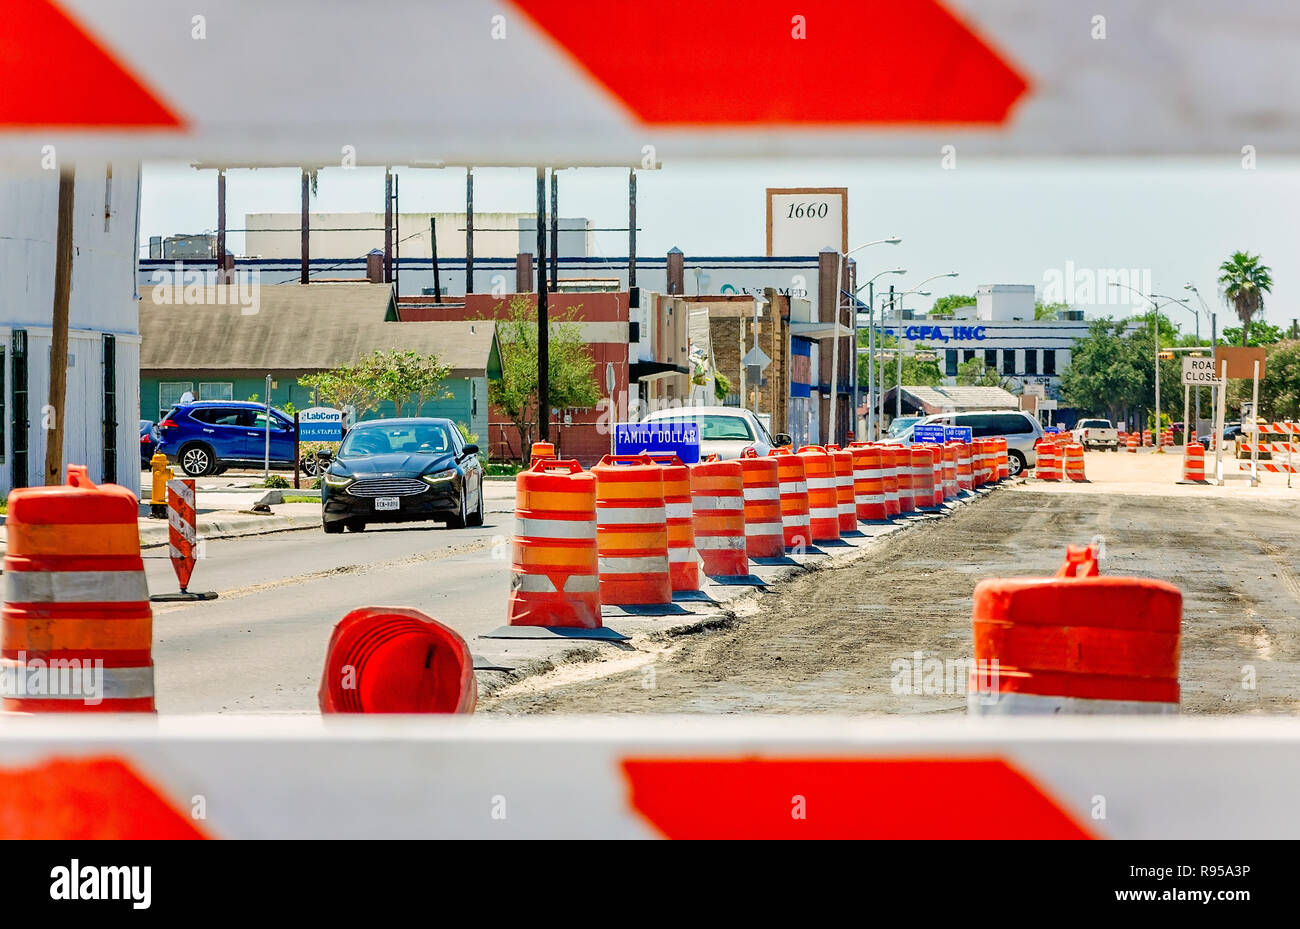 Cars travel through a maze of traffic cones on Staples Street, Aug. 23, 2018, in Corpus Christi, Texas. - Stock Image